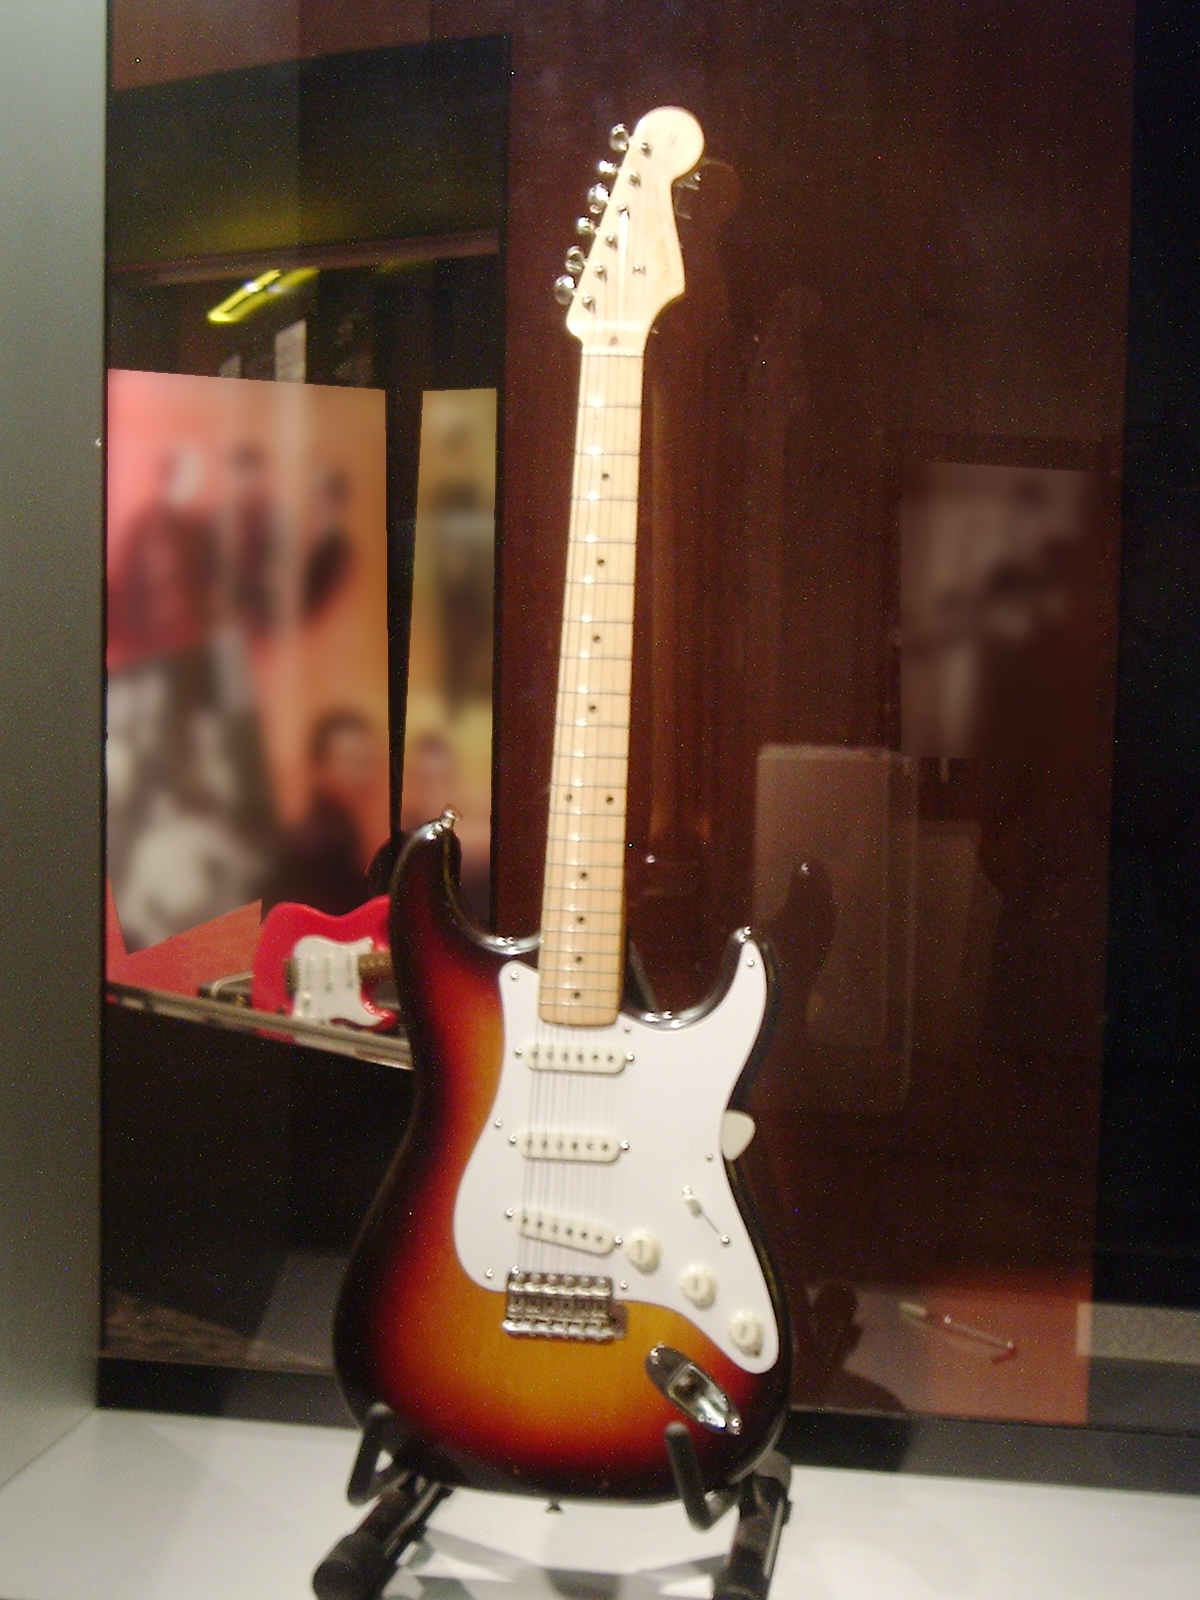 Fichier:Buddy Holly's Fender Stratocaster, Buddy Holly Center, Lubbock,  TX.jpg — Wikipédia